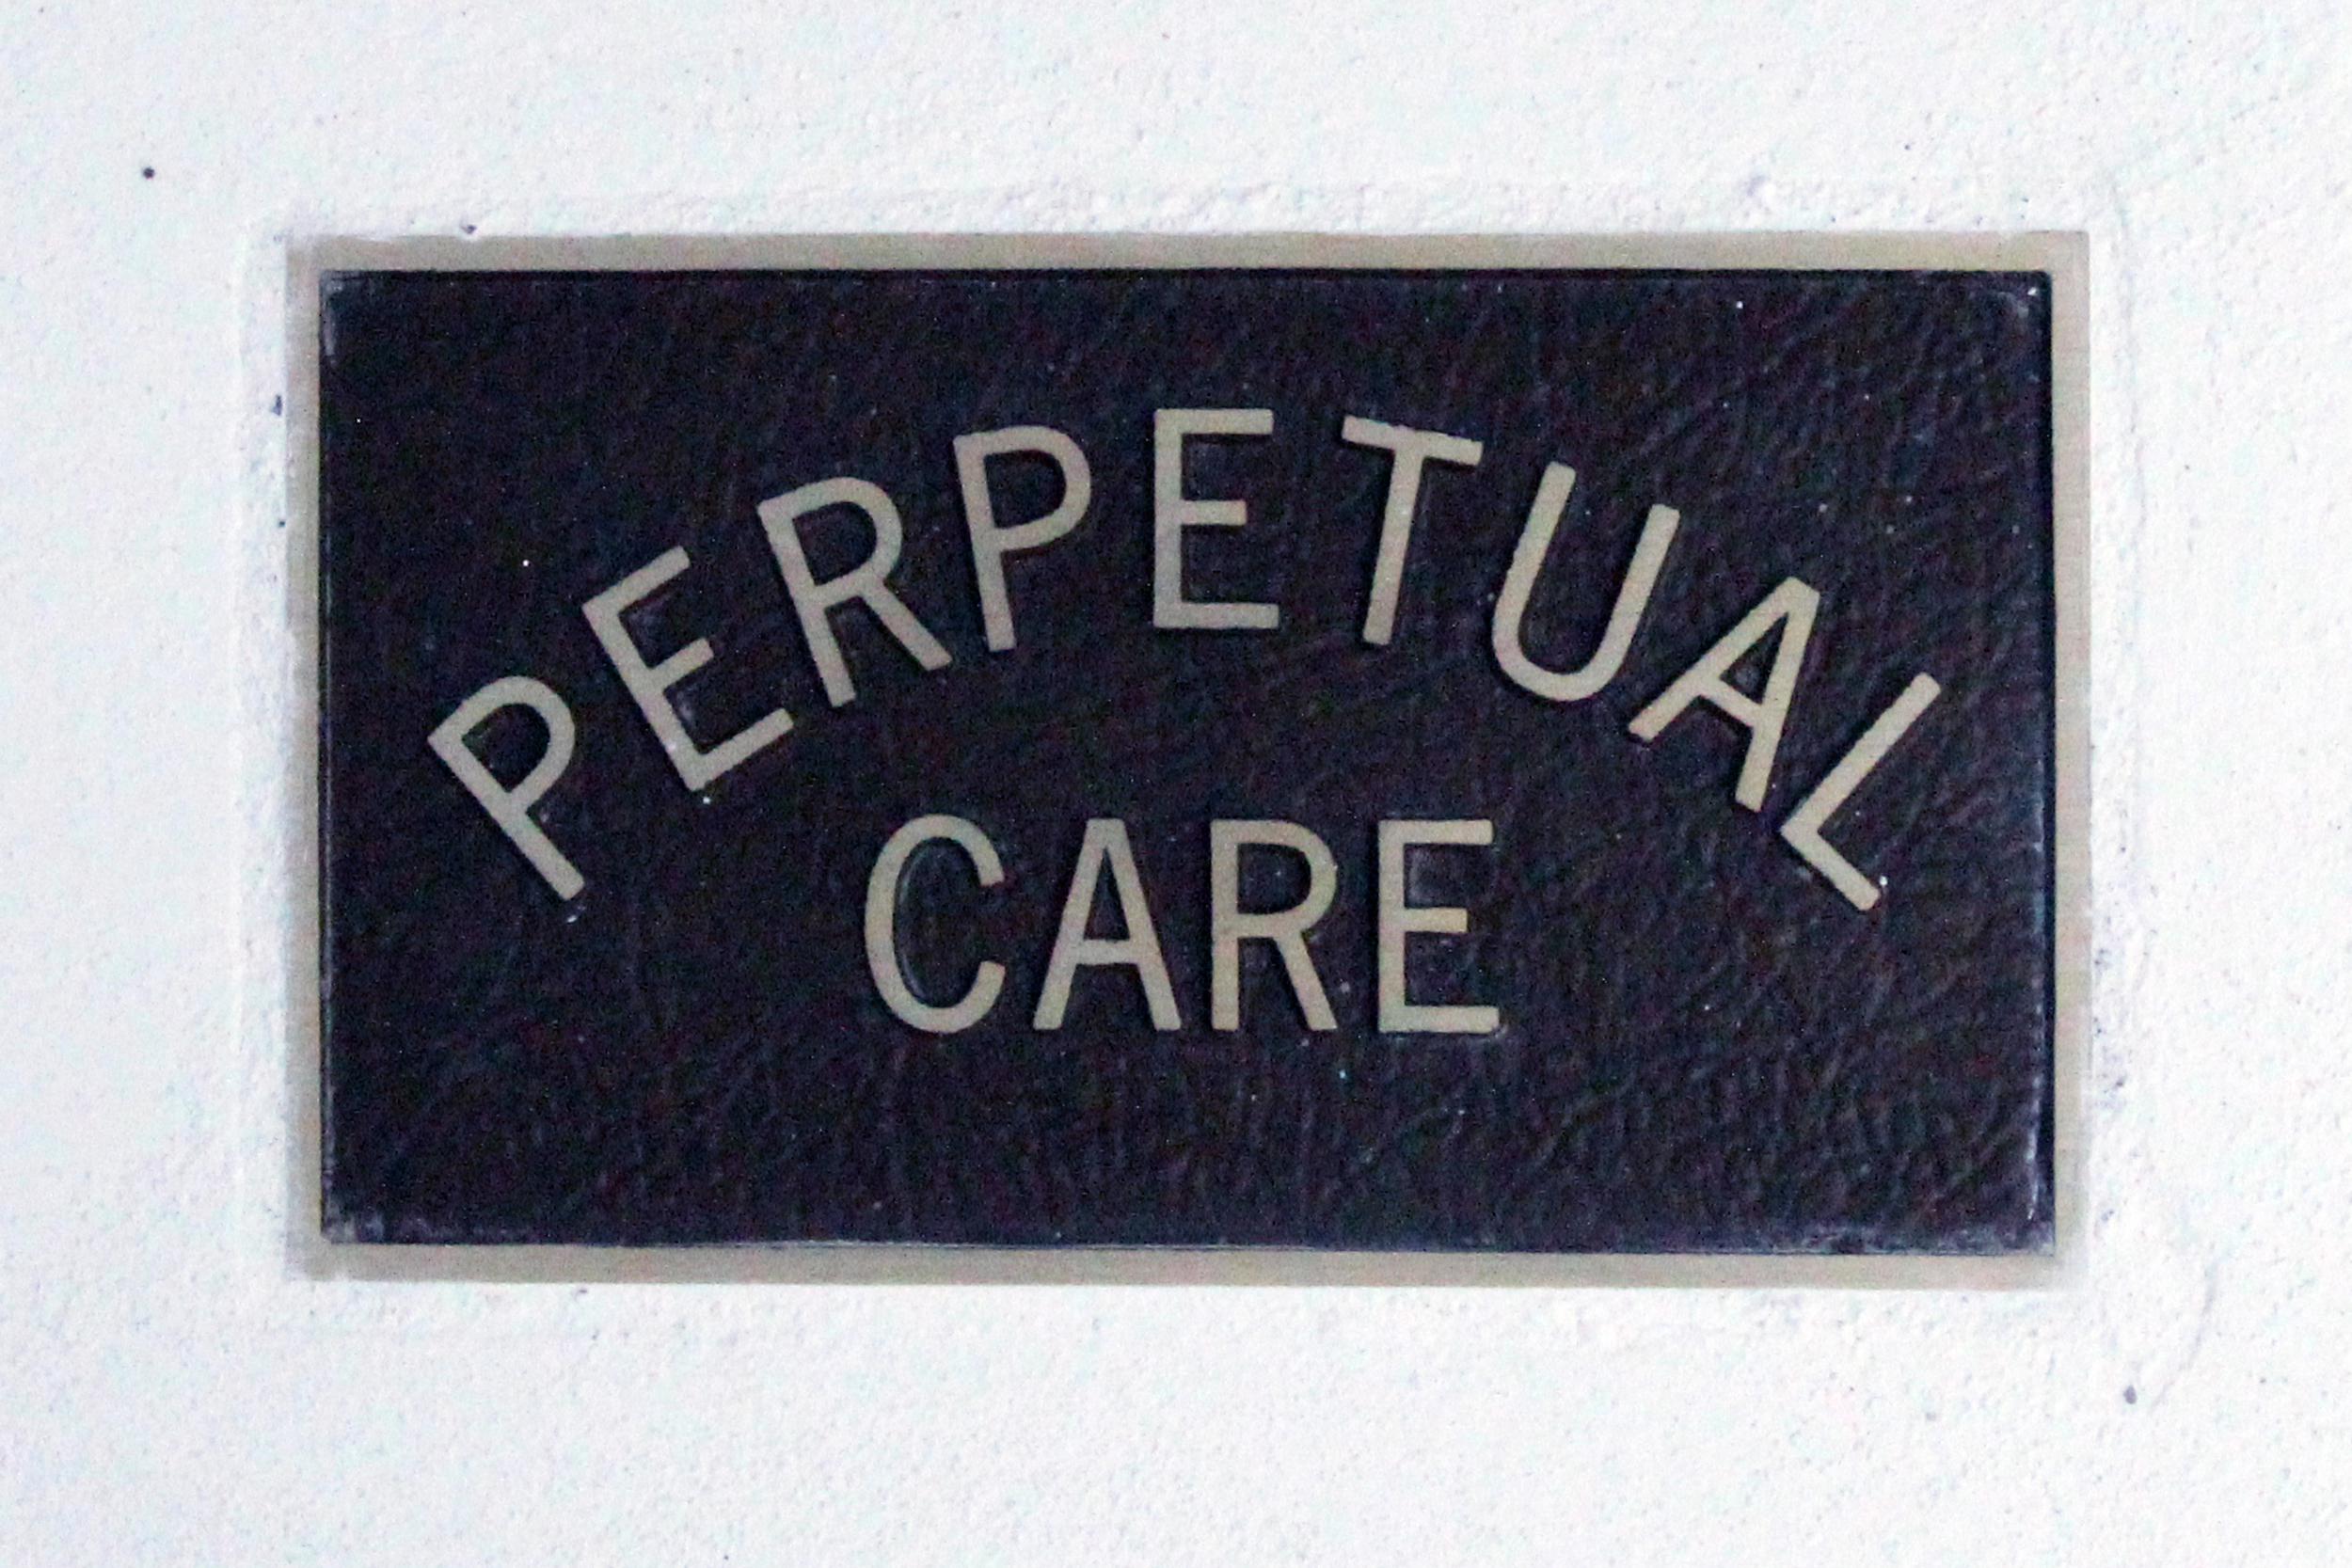 Perpetual care placard, indicating the deceased or their family has paid for the tomb to be kept up for the infinite future